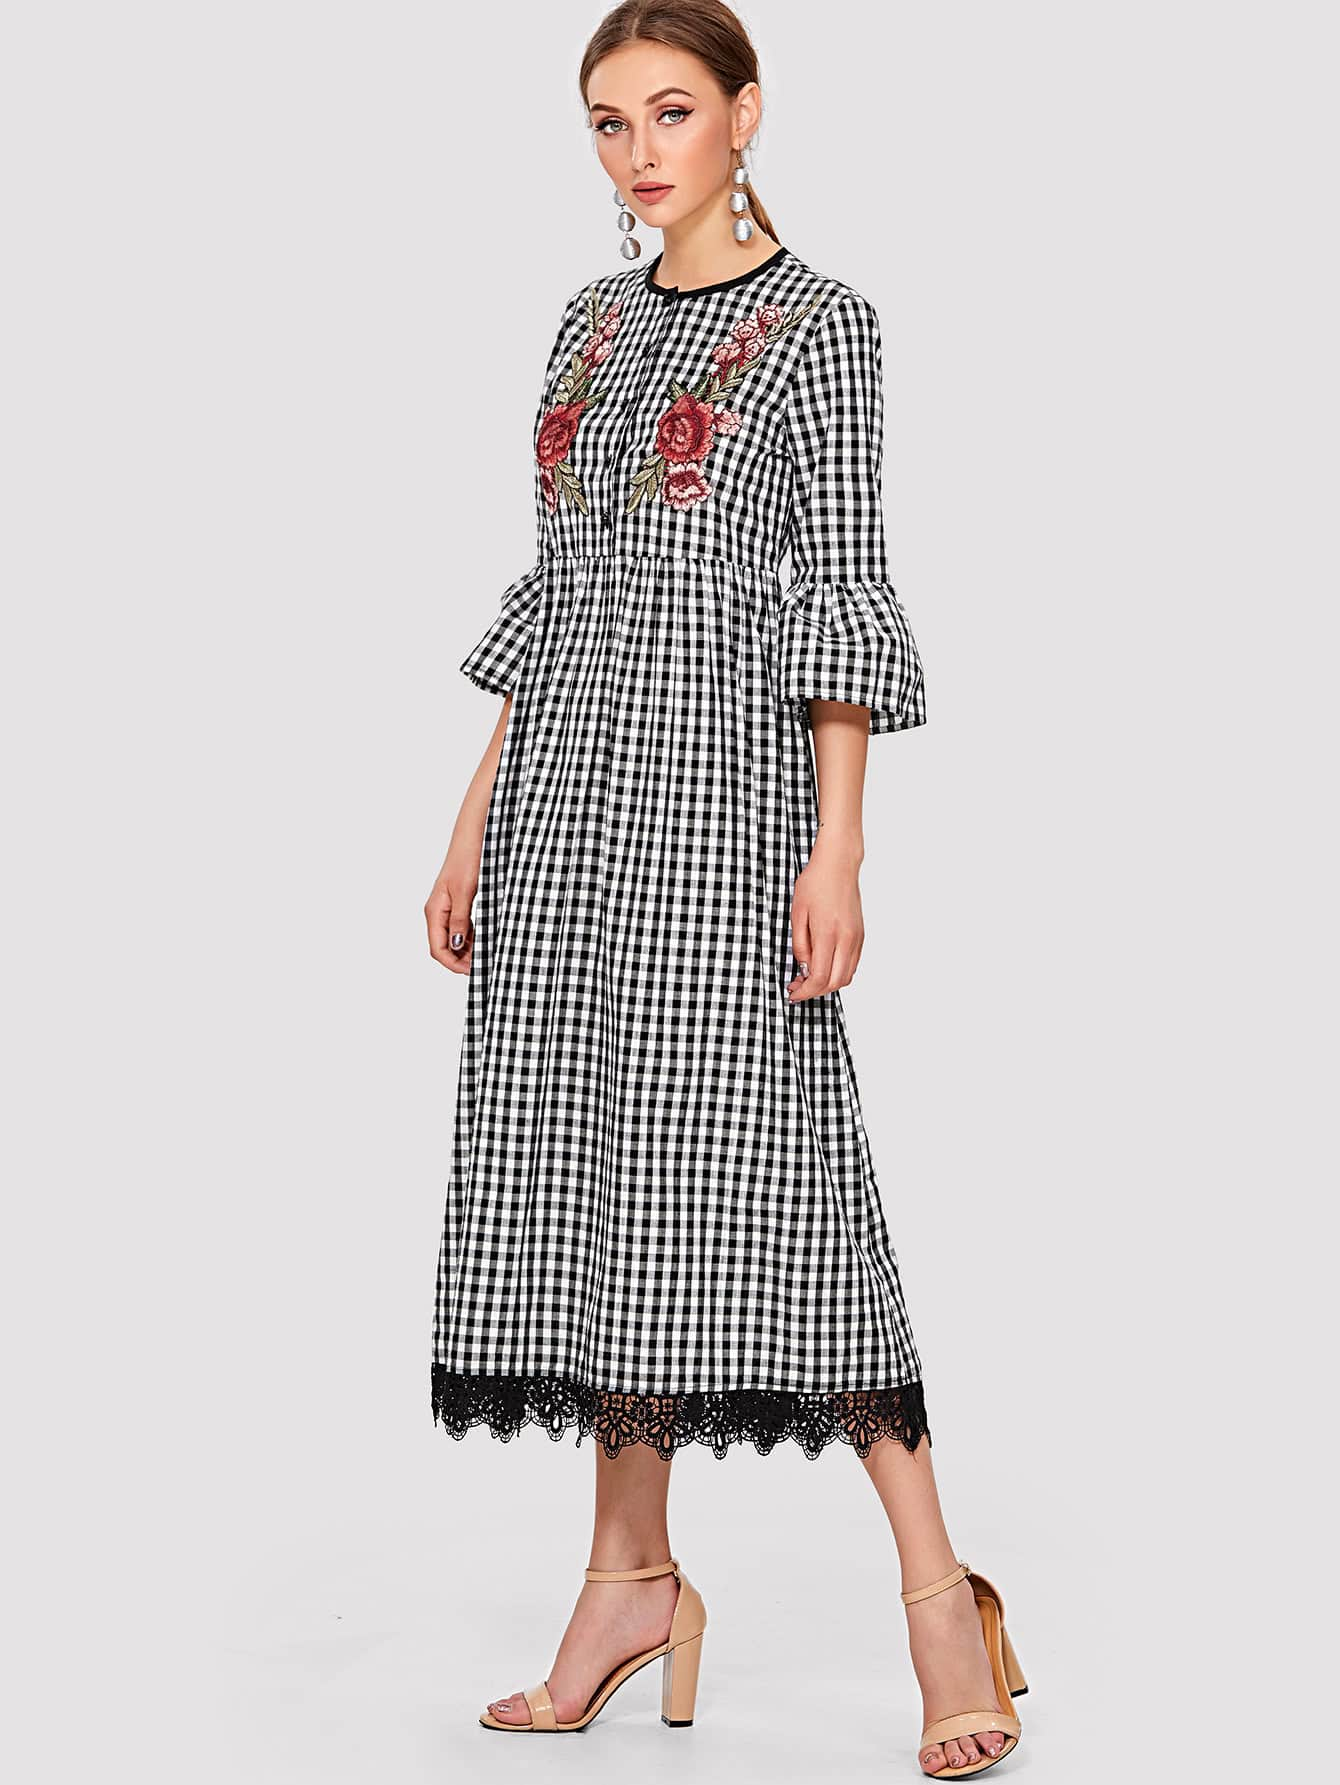 Embroidery Applique Lace Hem Gingham Dress gingham embroidery scallop hem pants